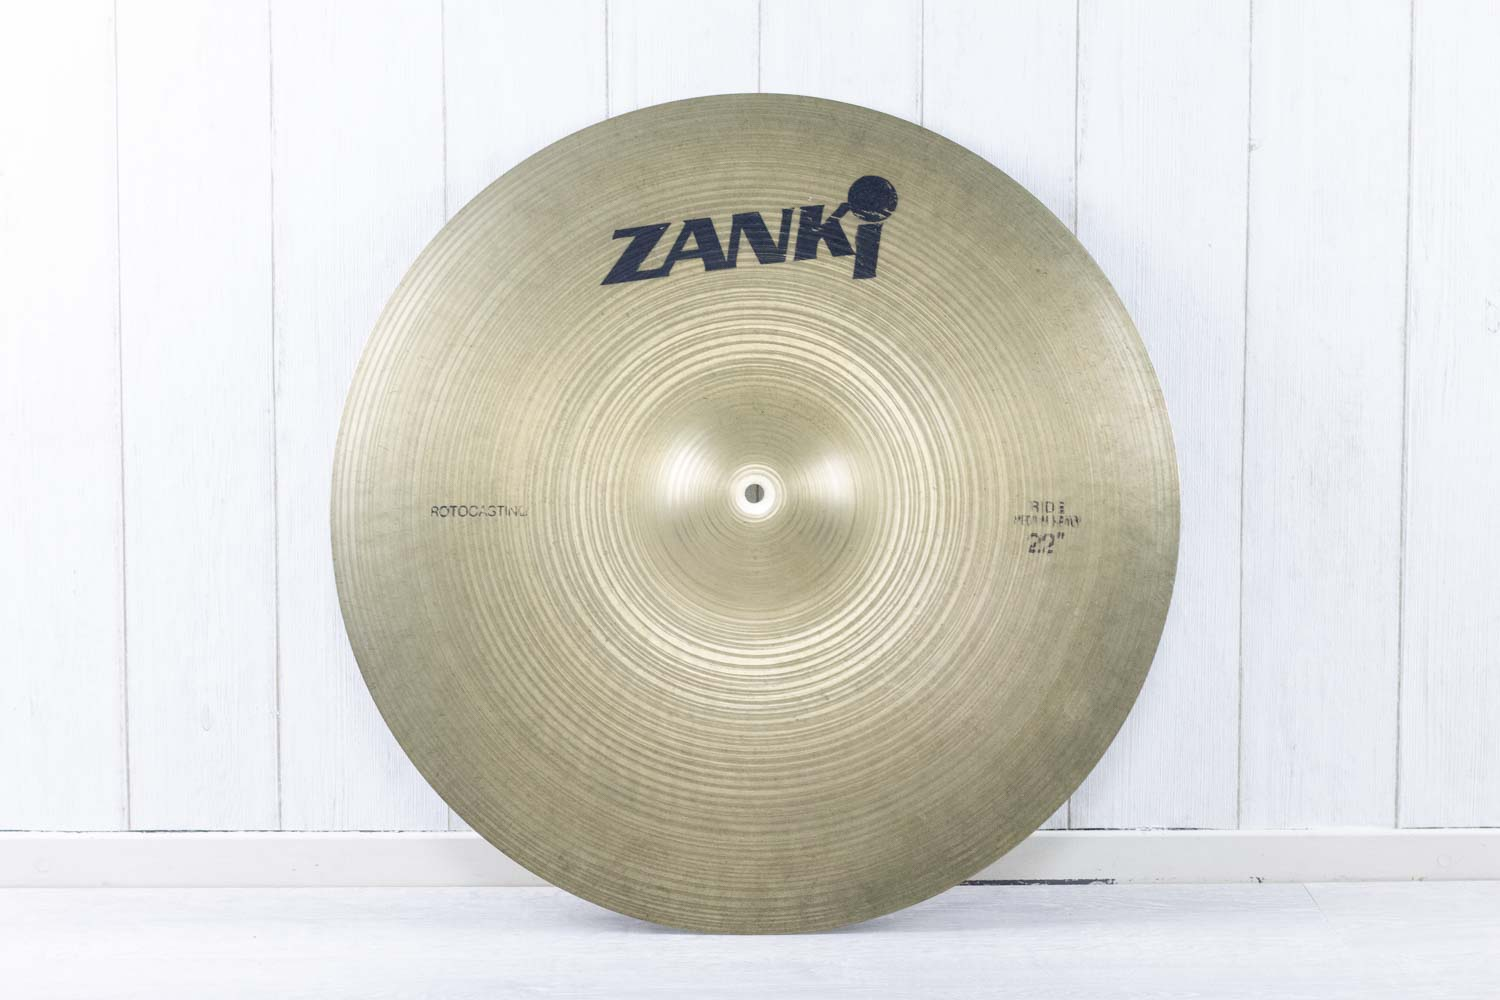 Zanki Rotocasting 22'' Medium Heavy Ride (5479933509796)